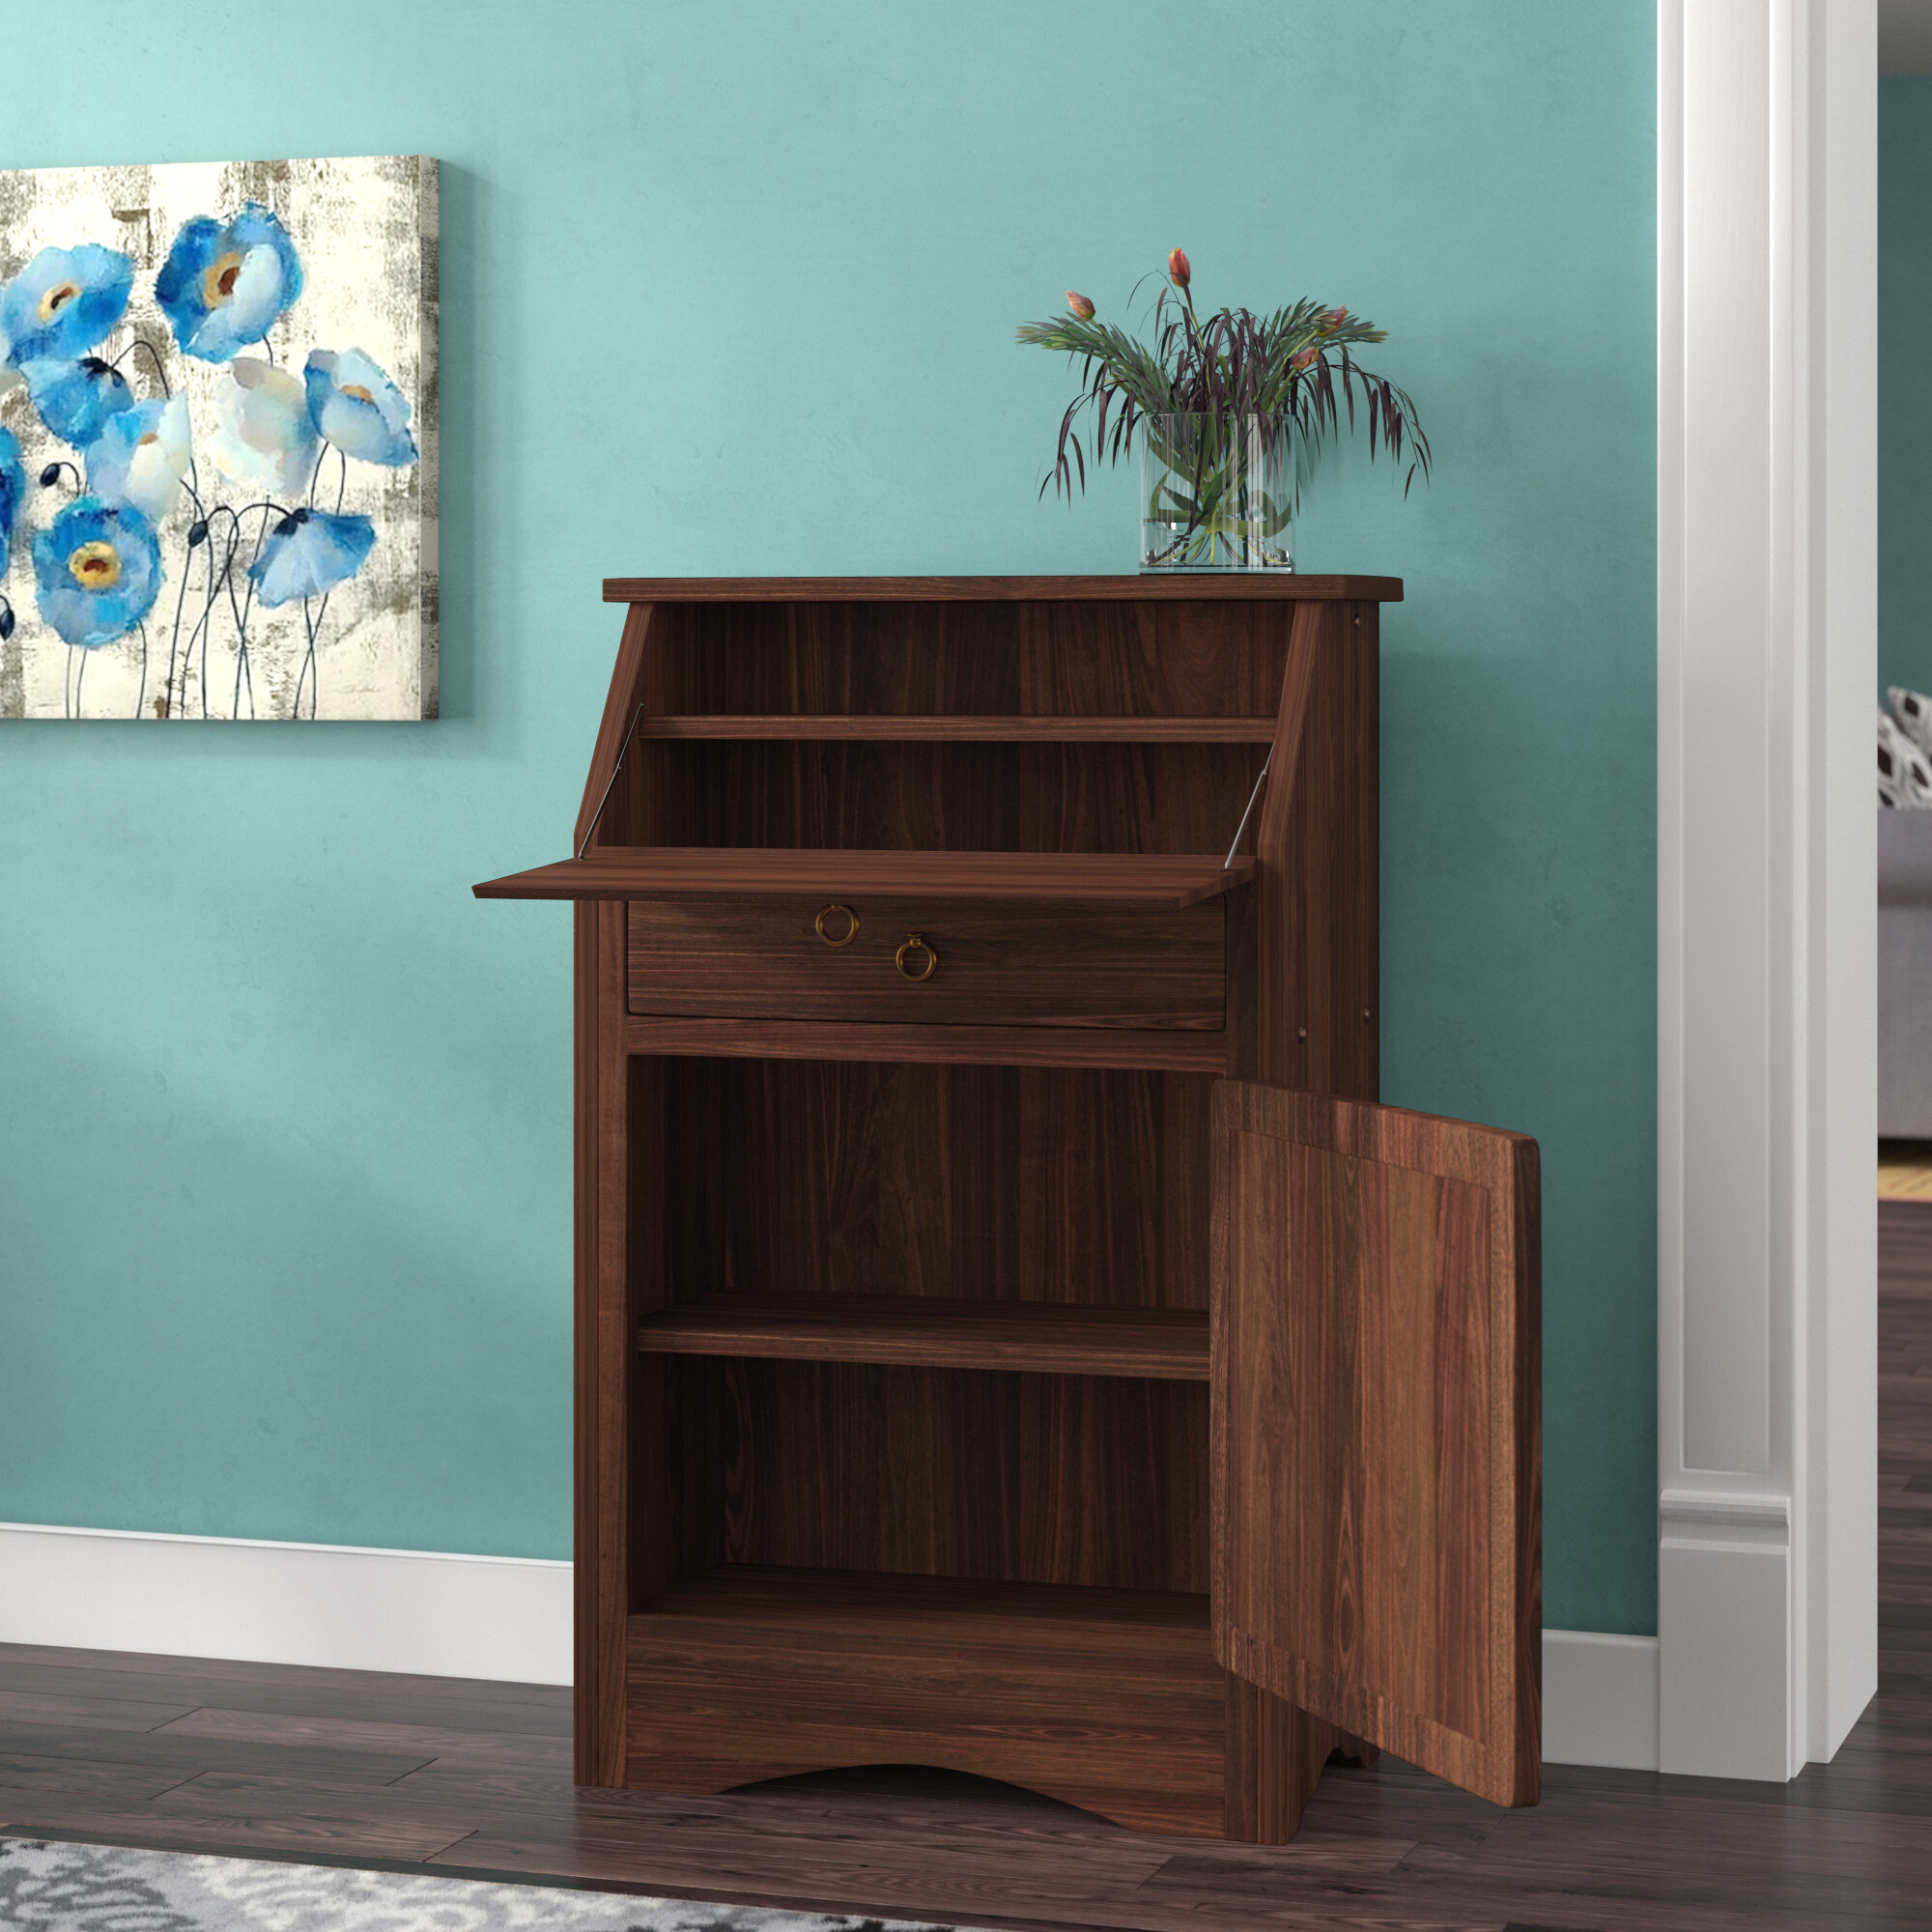 contemporary furniture erton ash asherton products teal home office gray desk desks